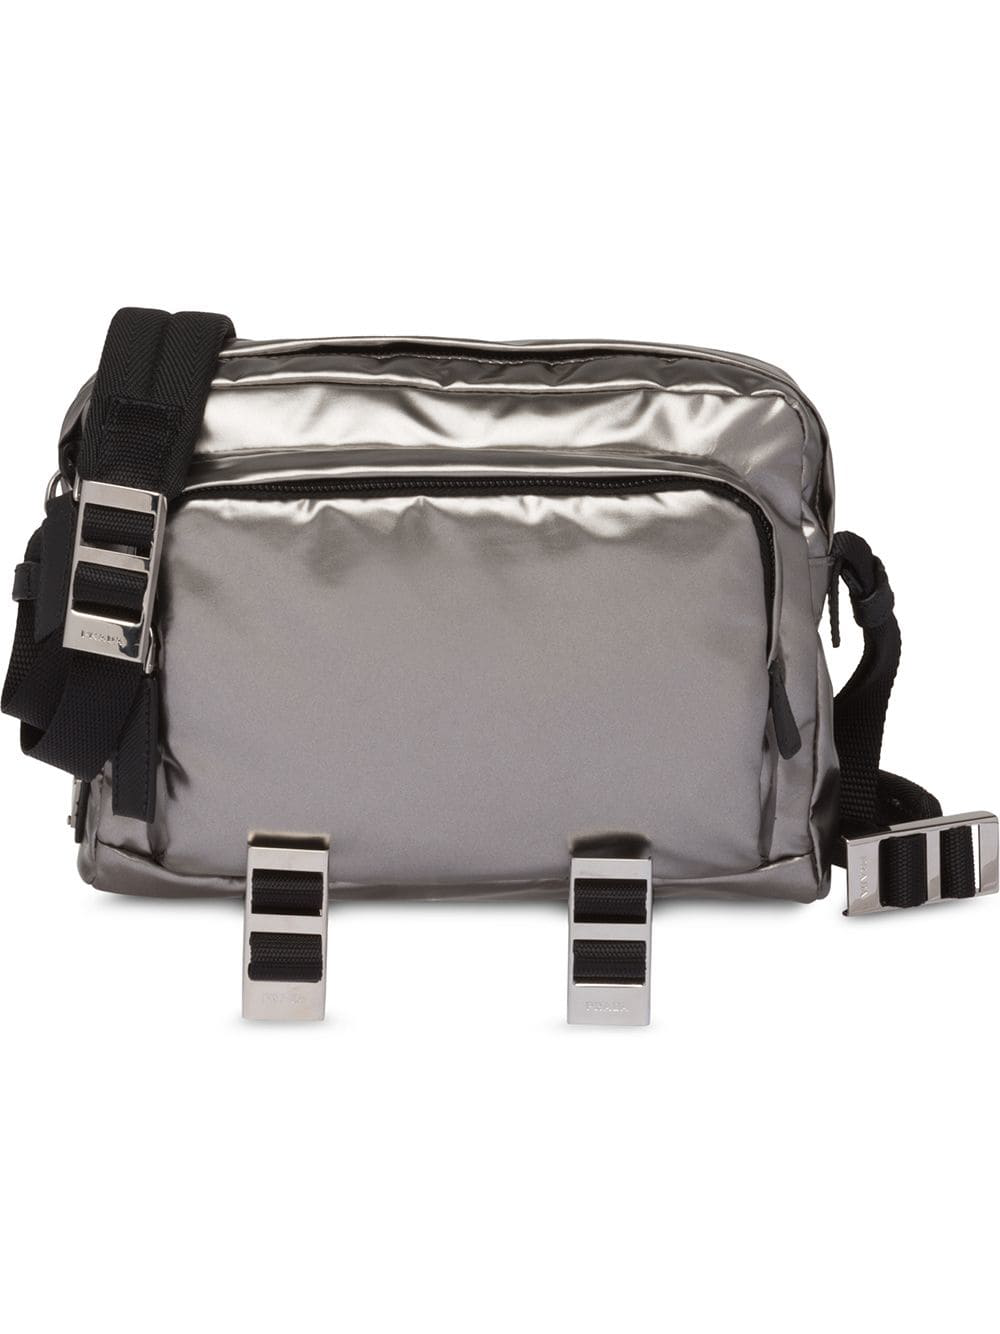 3c5a6df5962a Prada Technical Fabric Messenger Bag - Silver | ModeSens